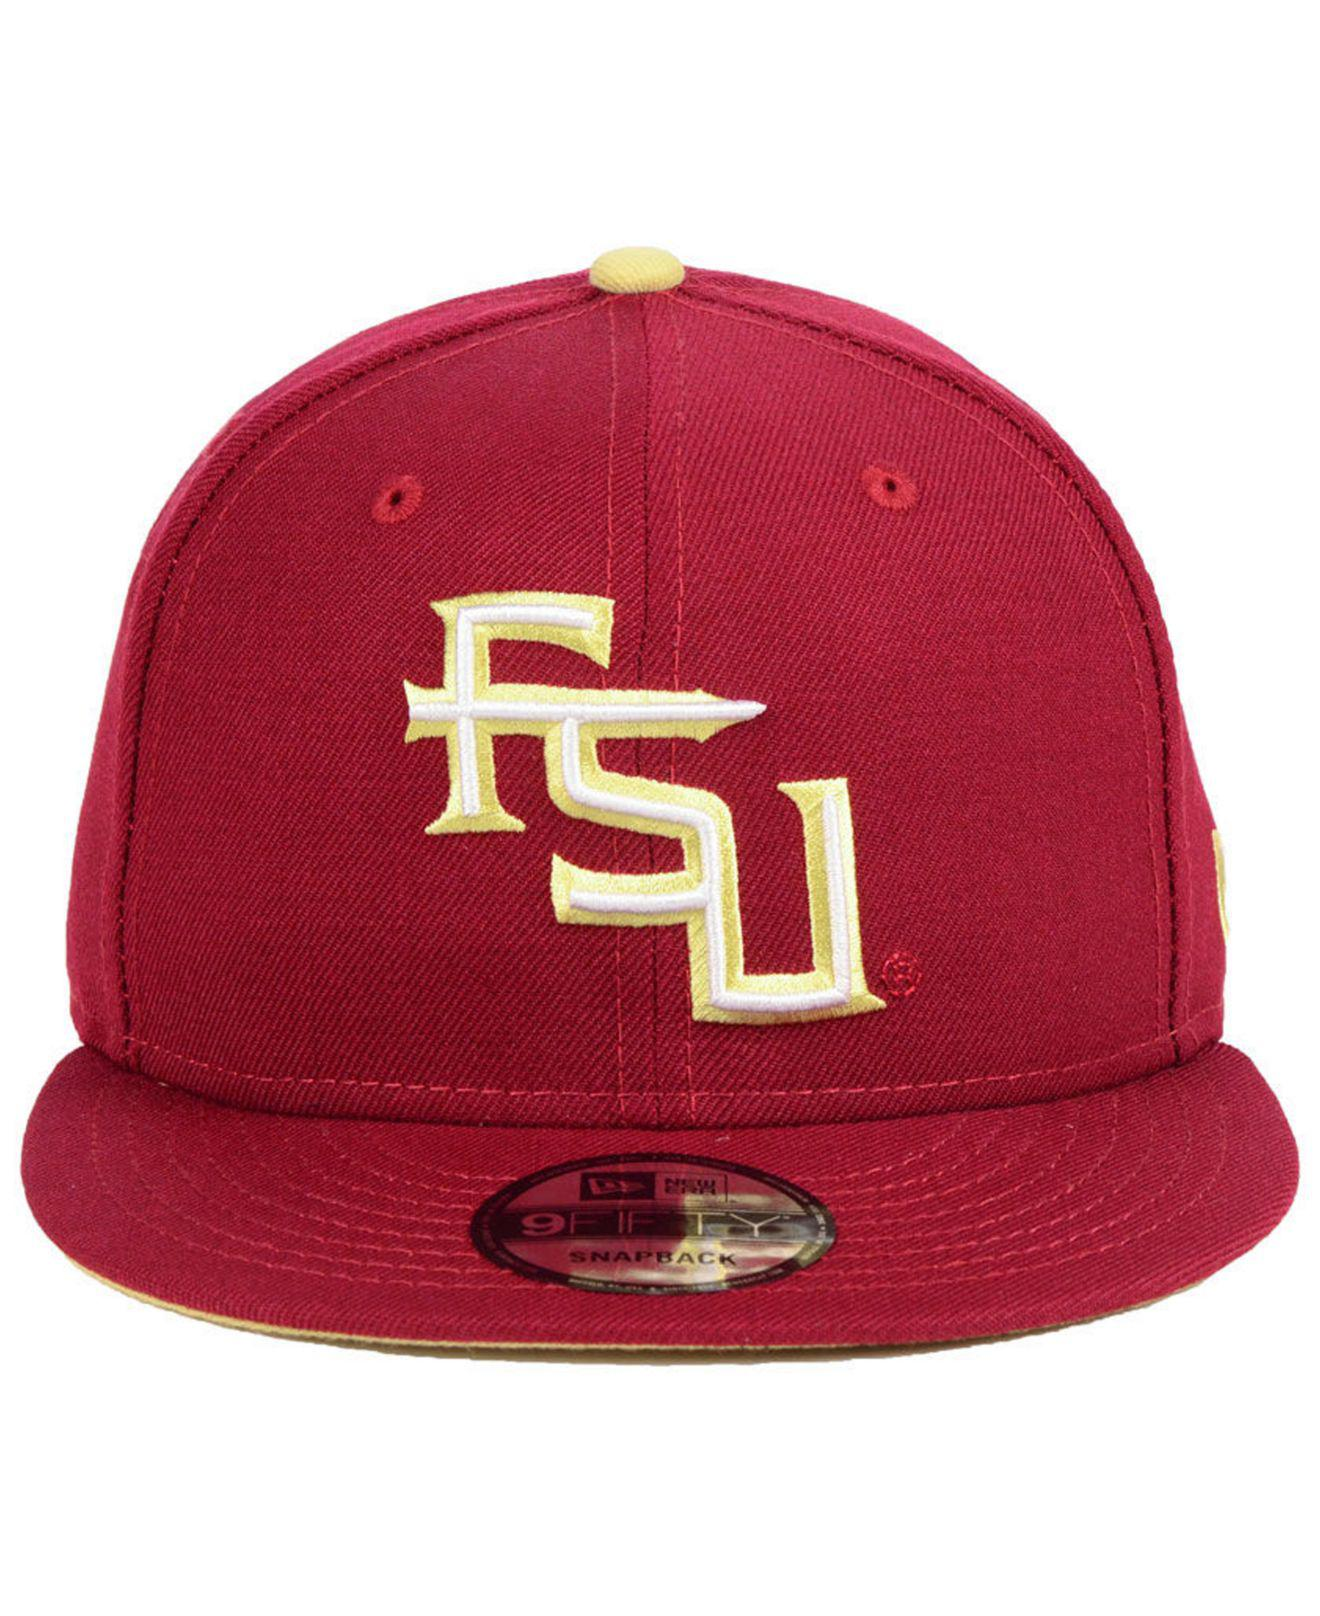 check out 088c4 7996b Lyst - KTZ Florida State Seminoles Core 9fifty Snapback Cap in Red for Men